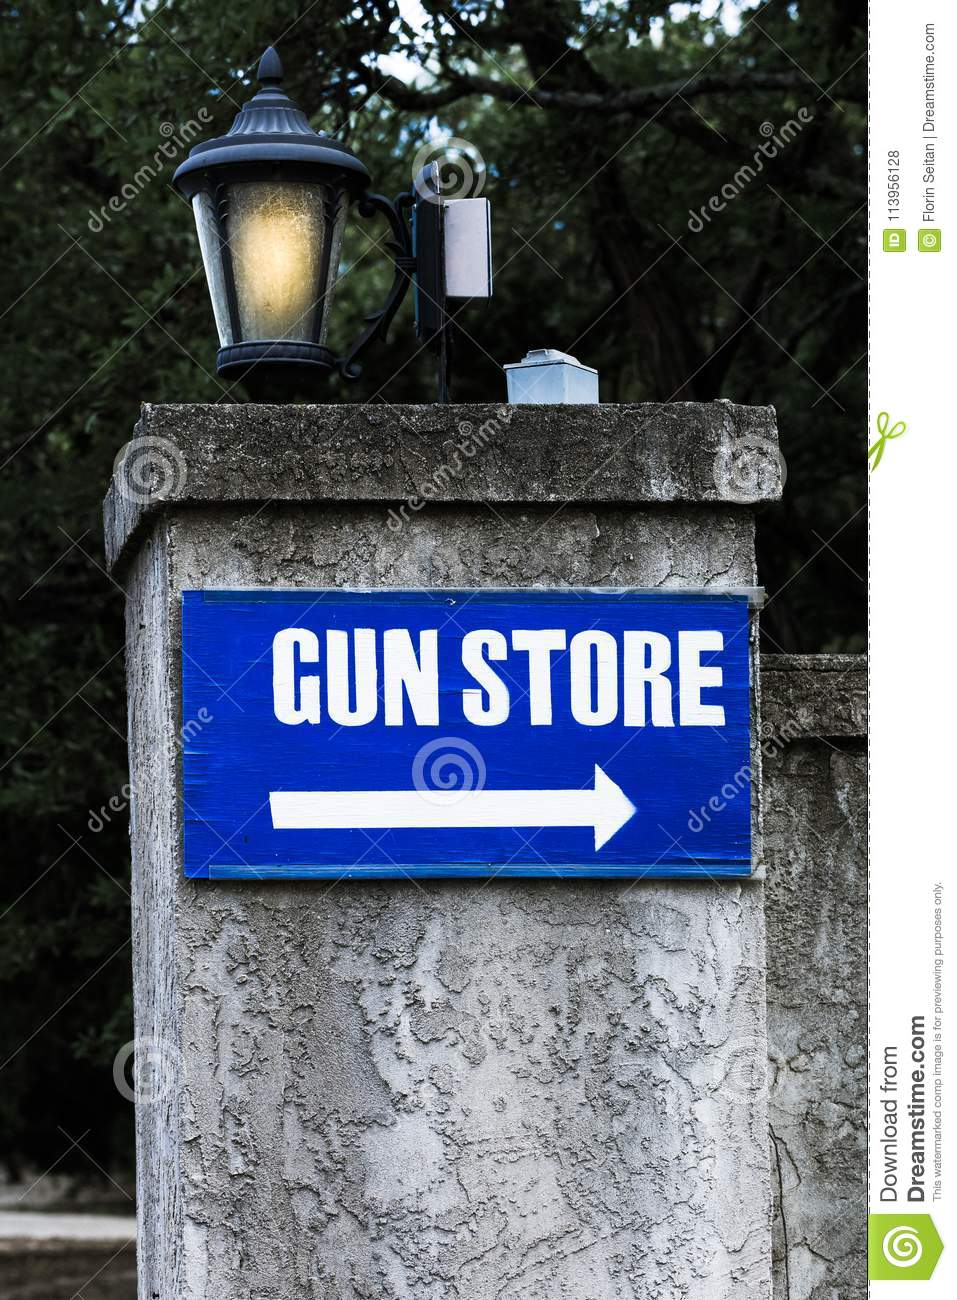 Wooden Gun Store Sign Posted On A Stone Wall With Light Post Stock